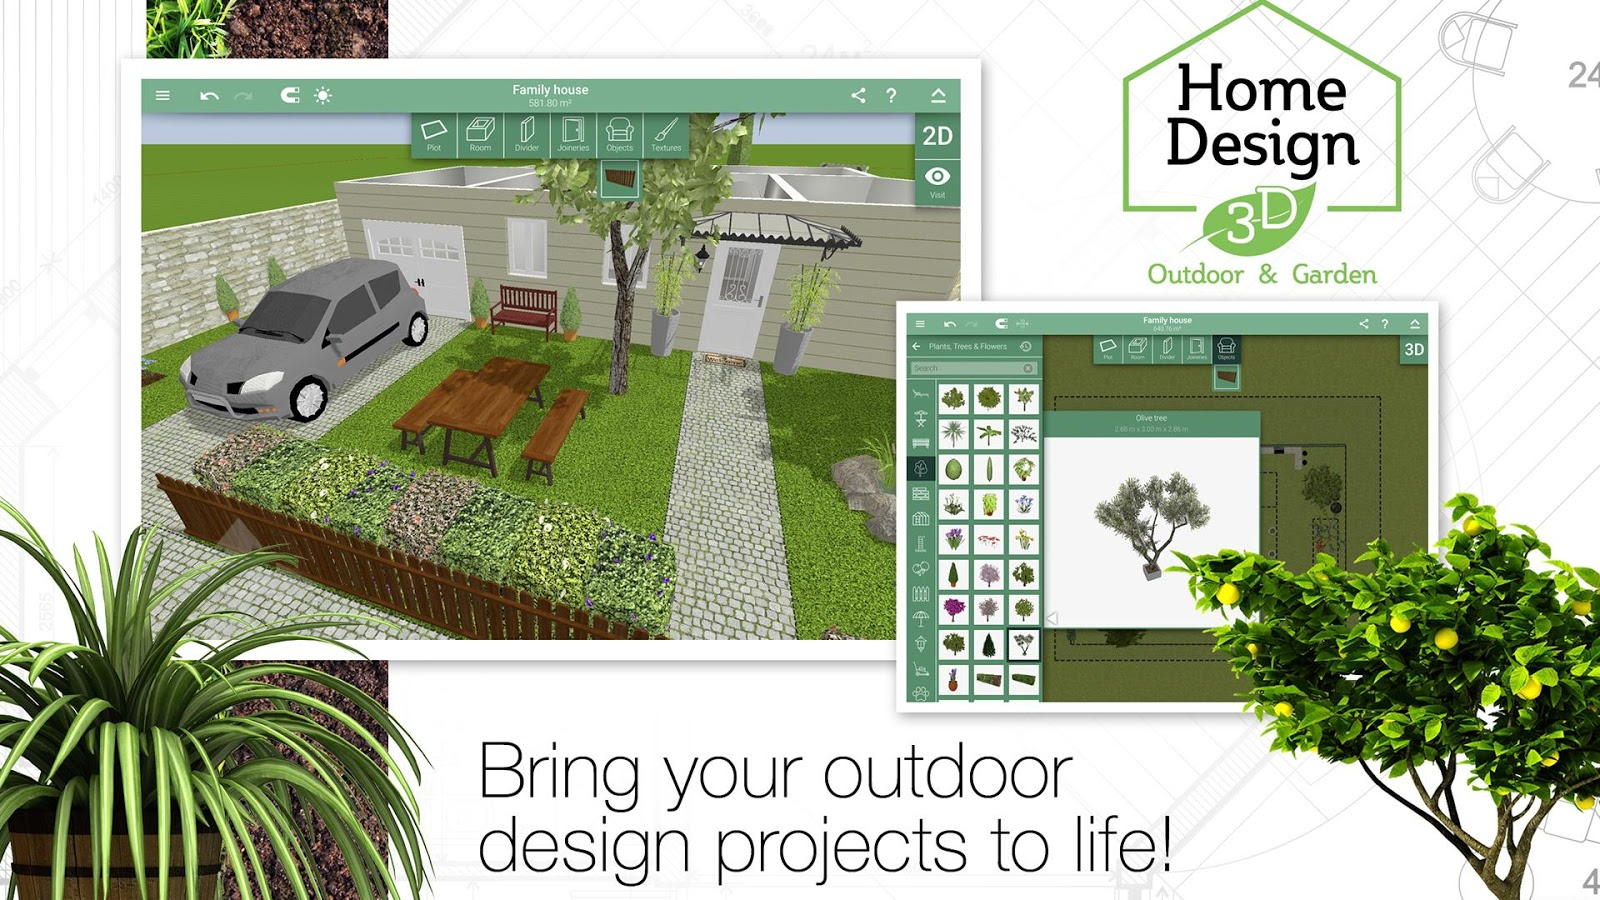 Backyard Design App free landscape design app for mac Home Design 3d Outdoor Garden Screenshot